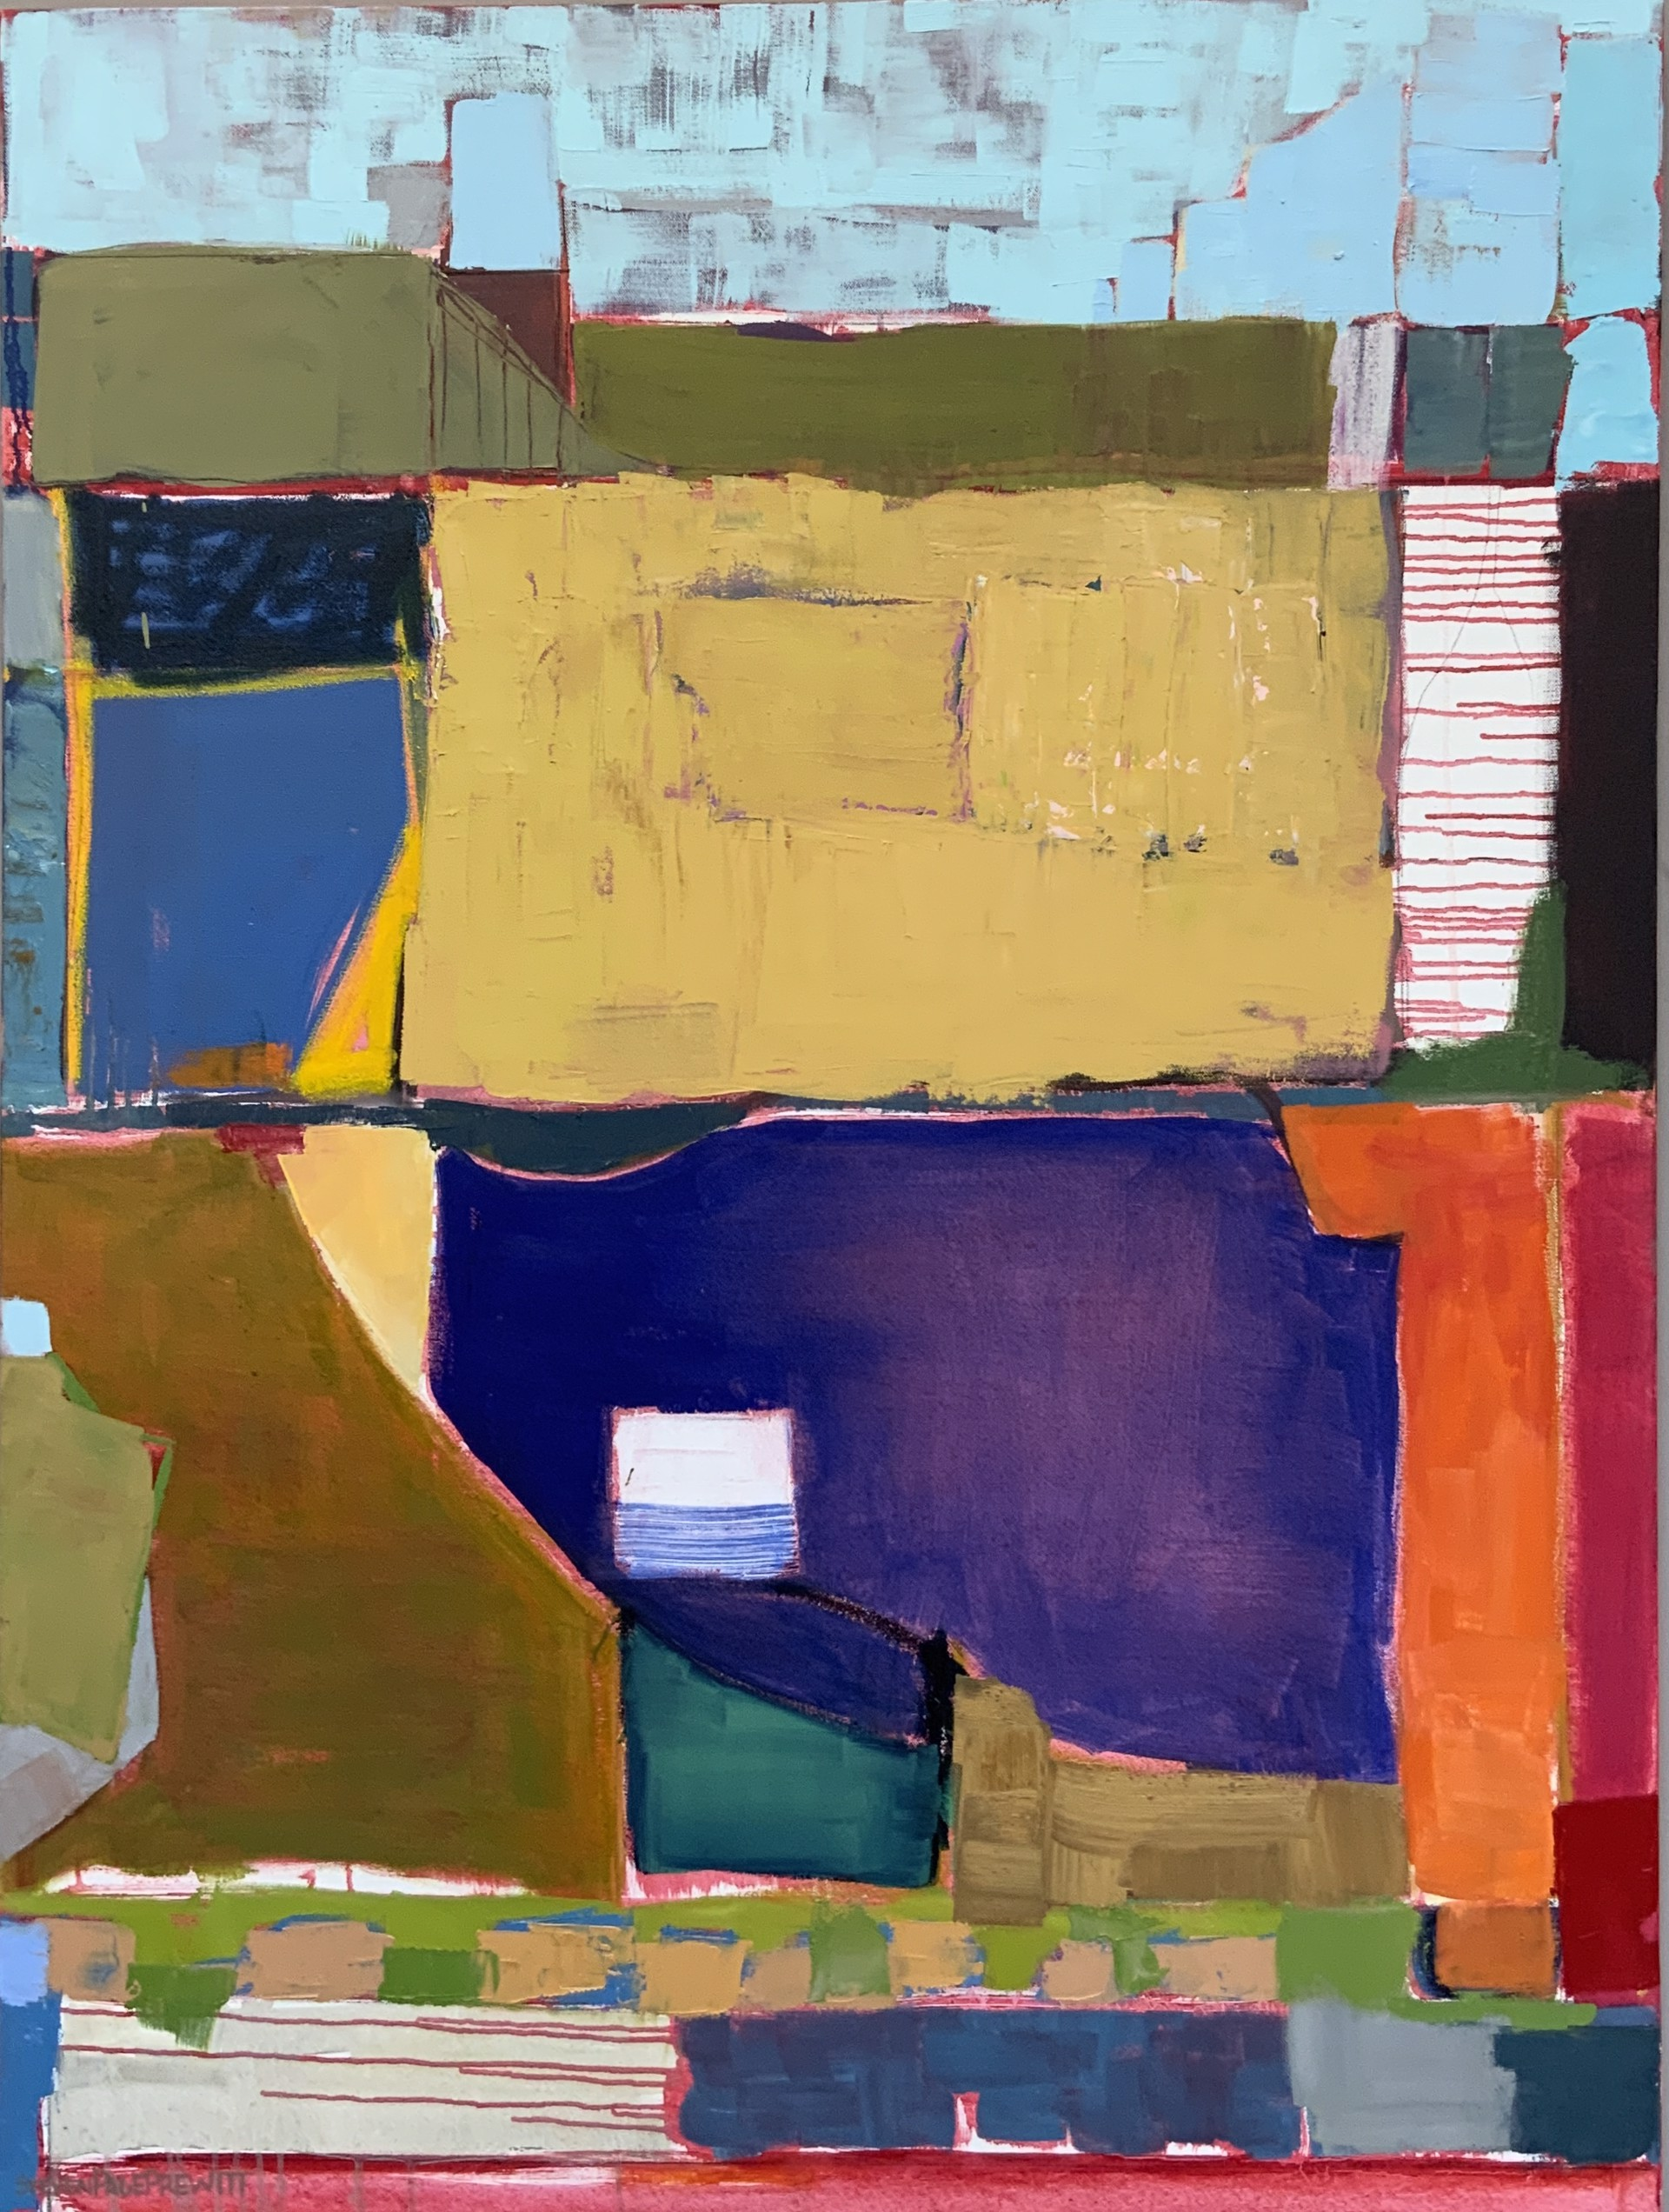 Abstract Landscape from the Air 1 by stevenpage prewitt